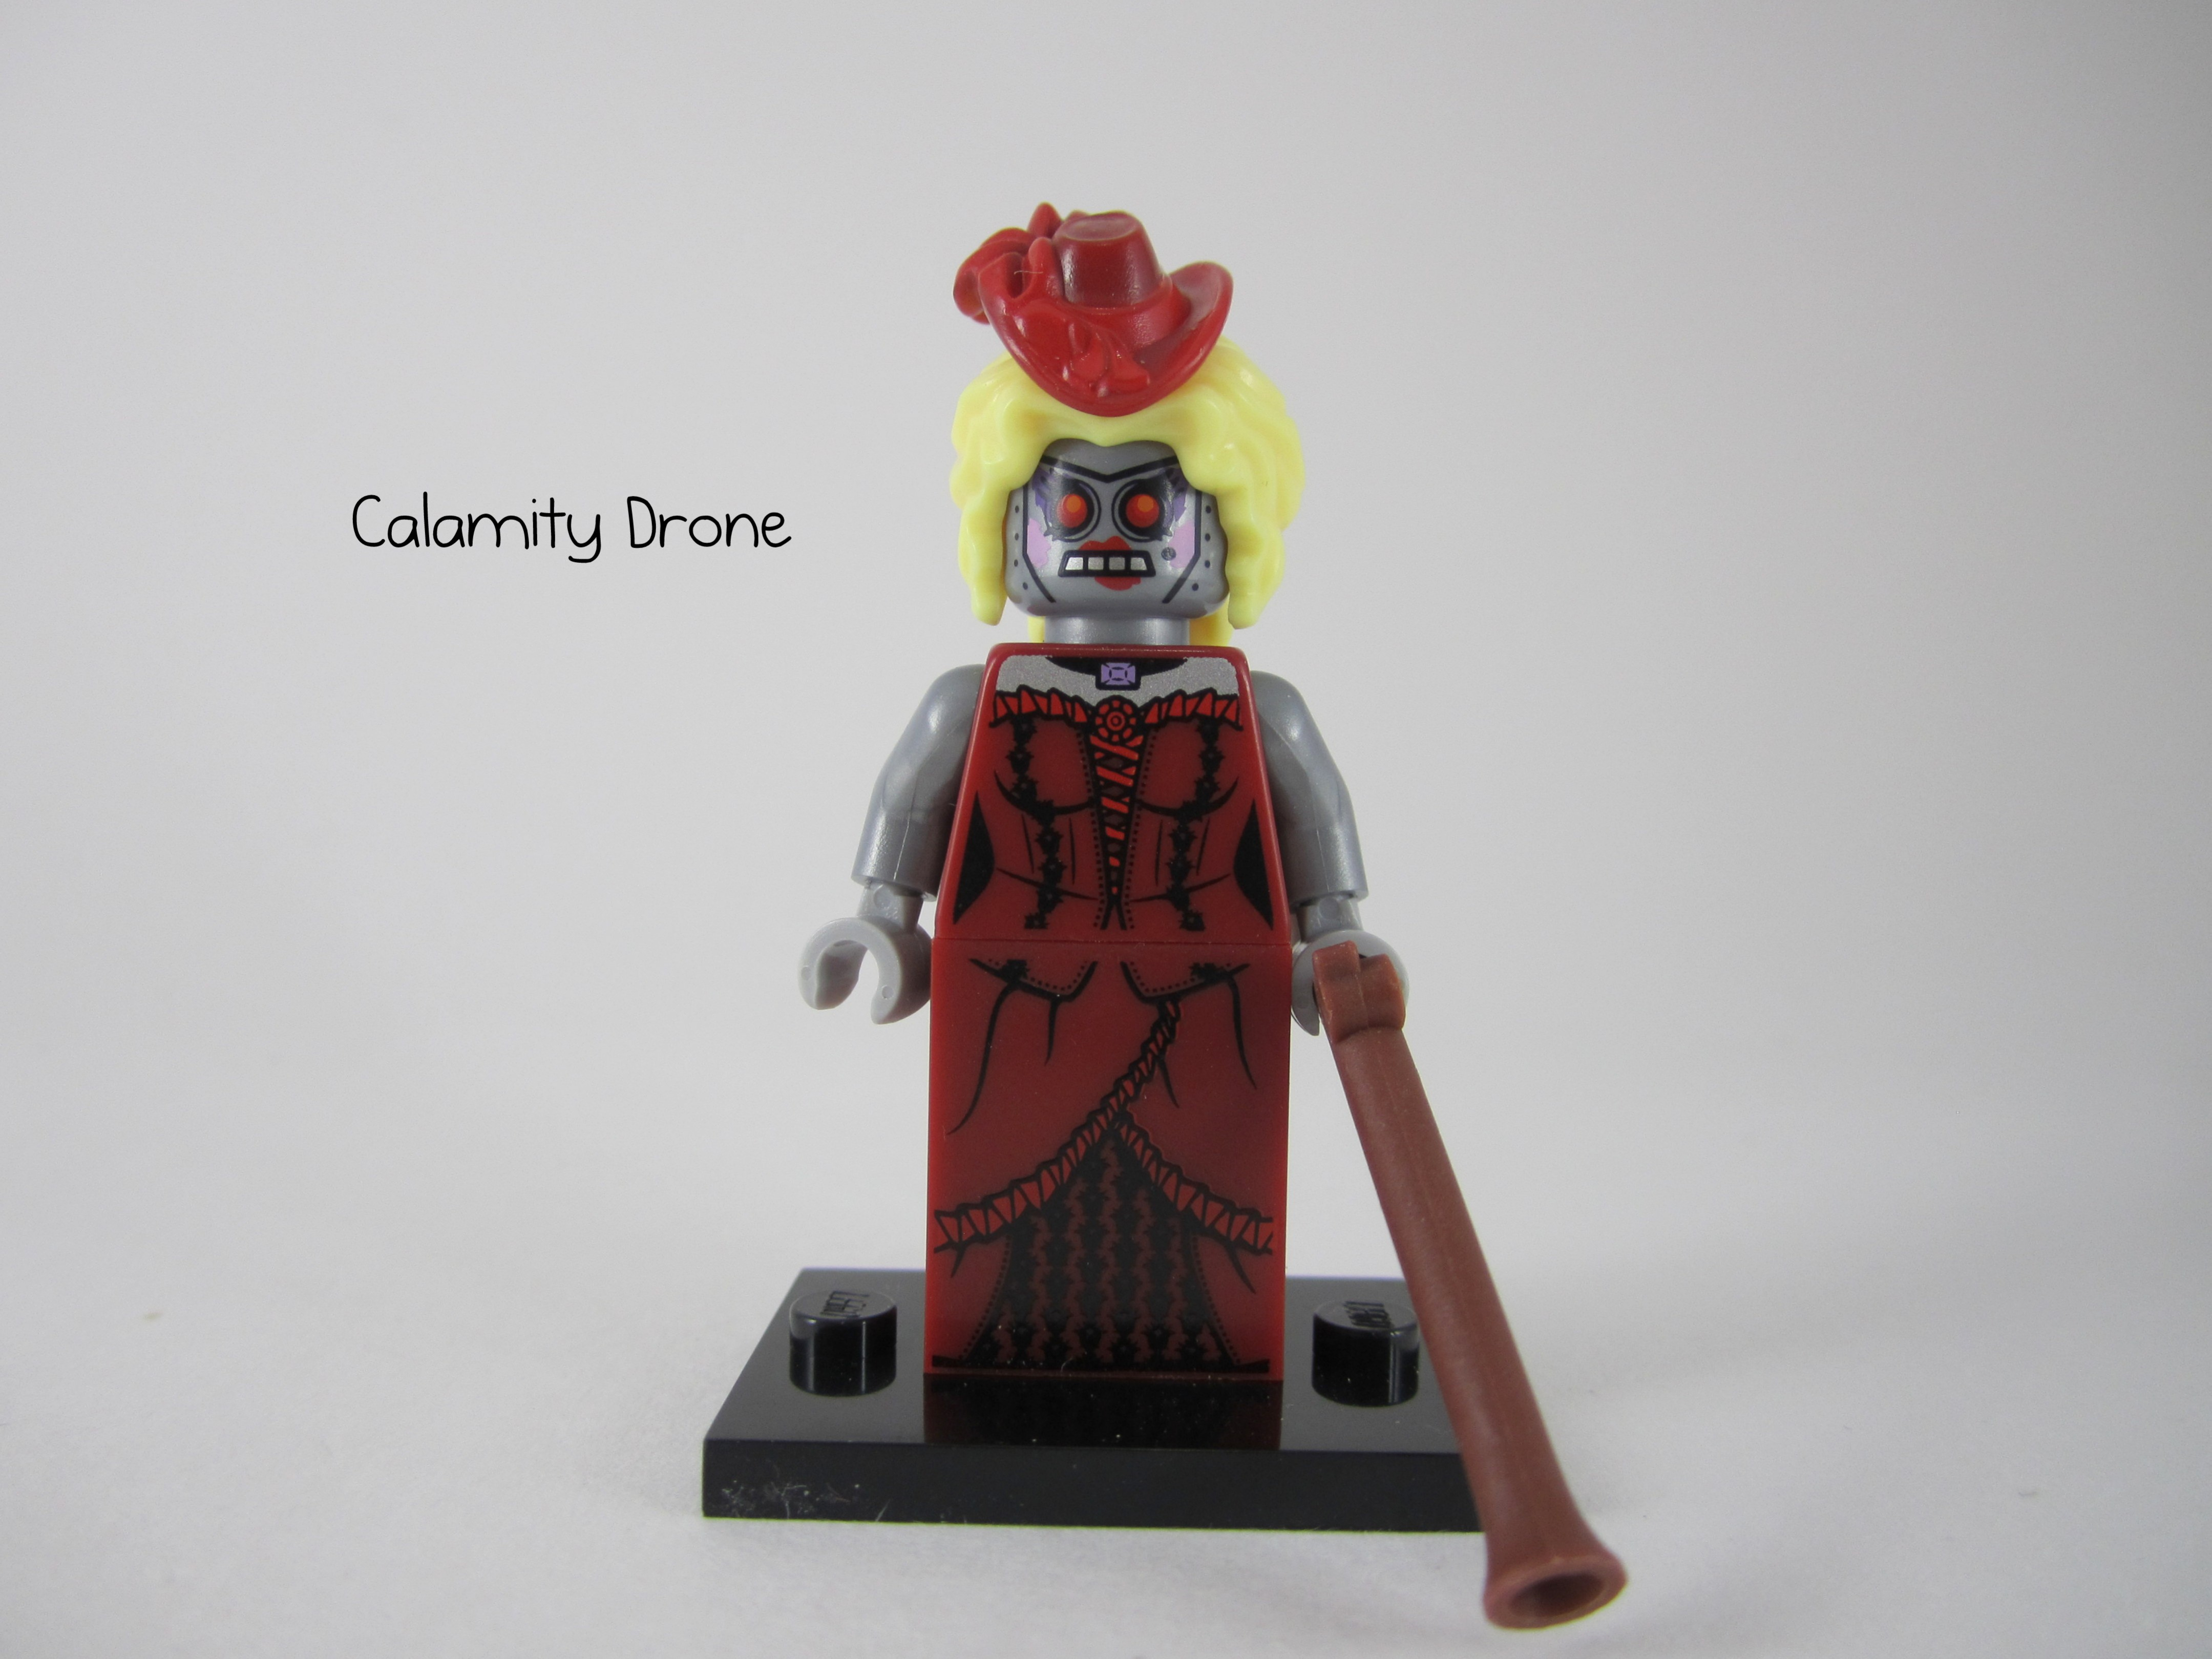 Calamity Drone minifig